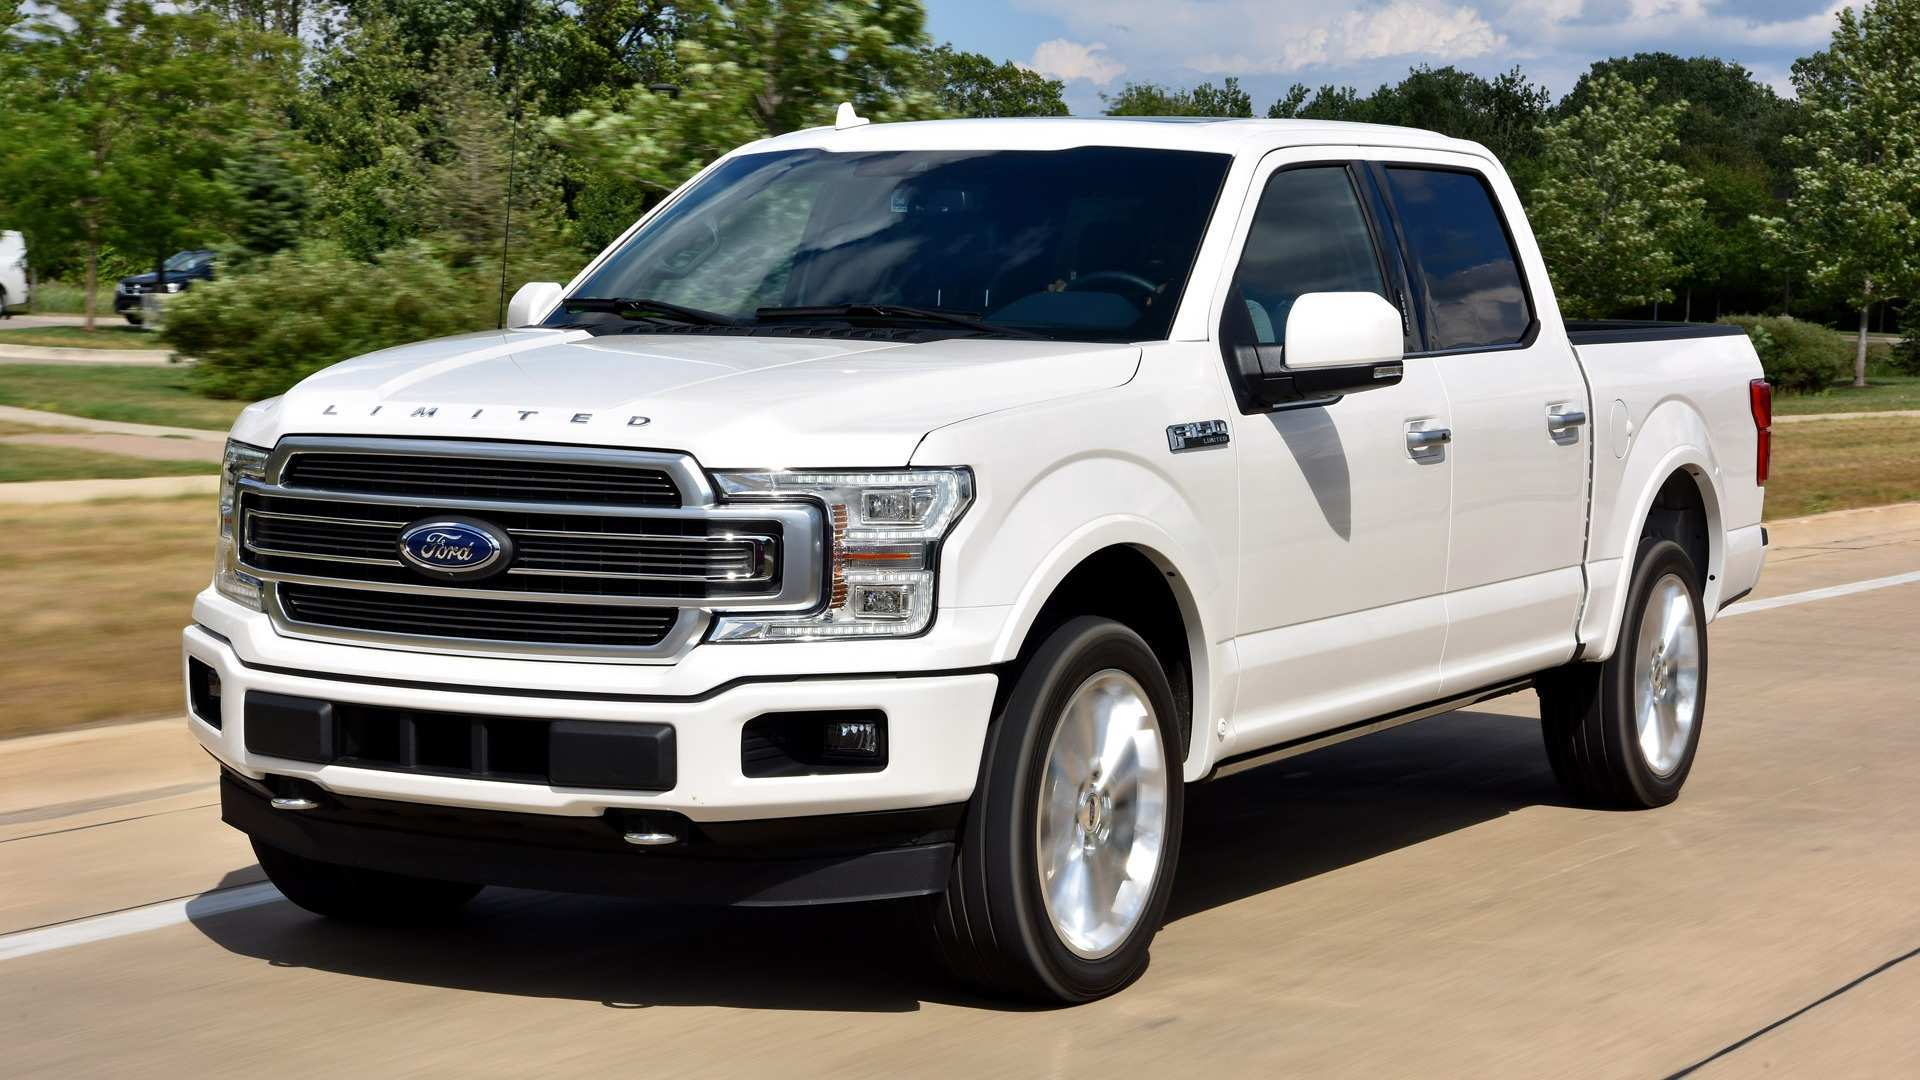 64 The Best 2020 Ford 150 Concept And Review